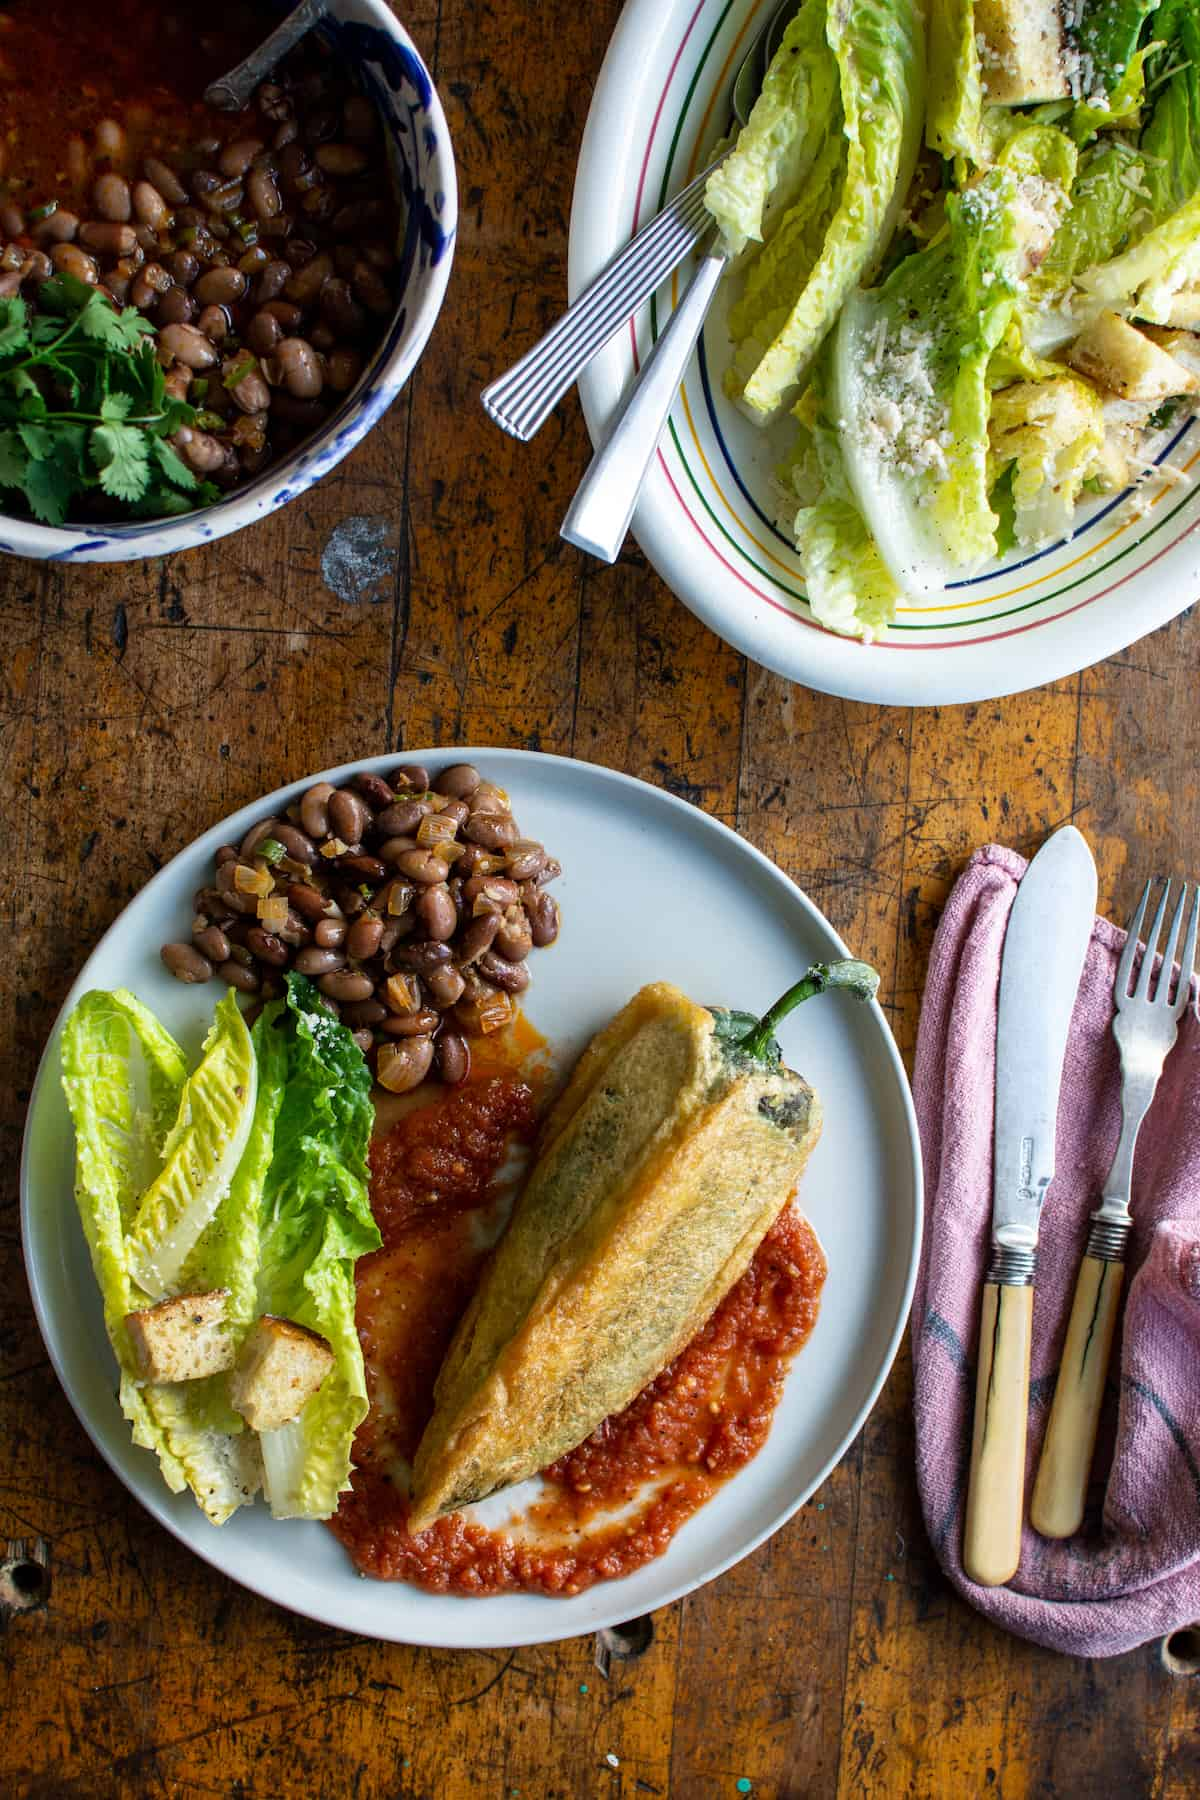 A white plate with a Chile Relleno, beans, and Caesar salad on it sitting on a wood table next to a pink cloth napkin and a fork and knife.